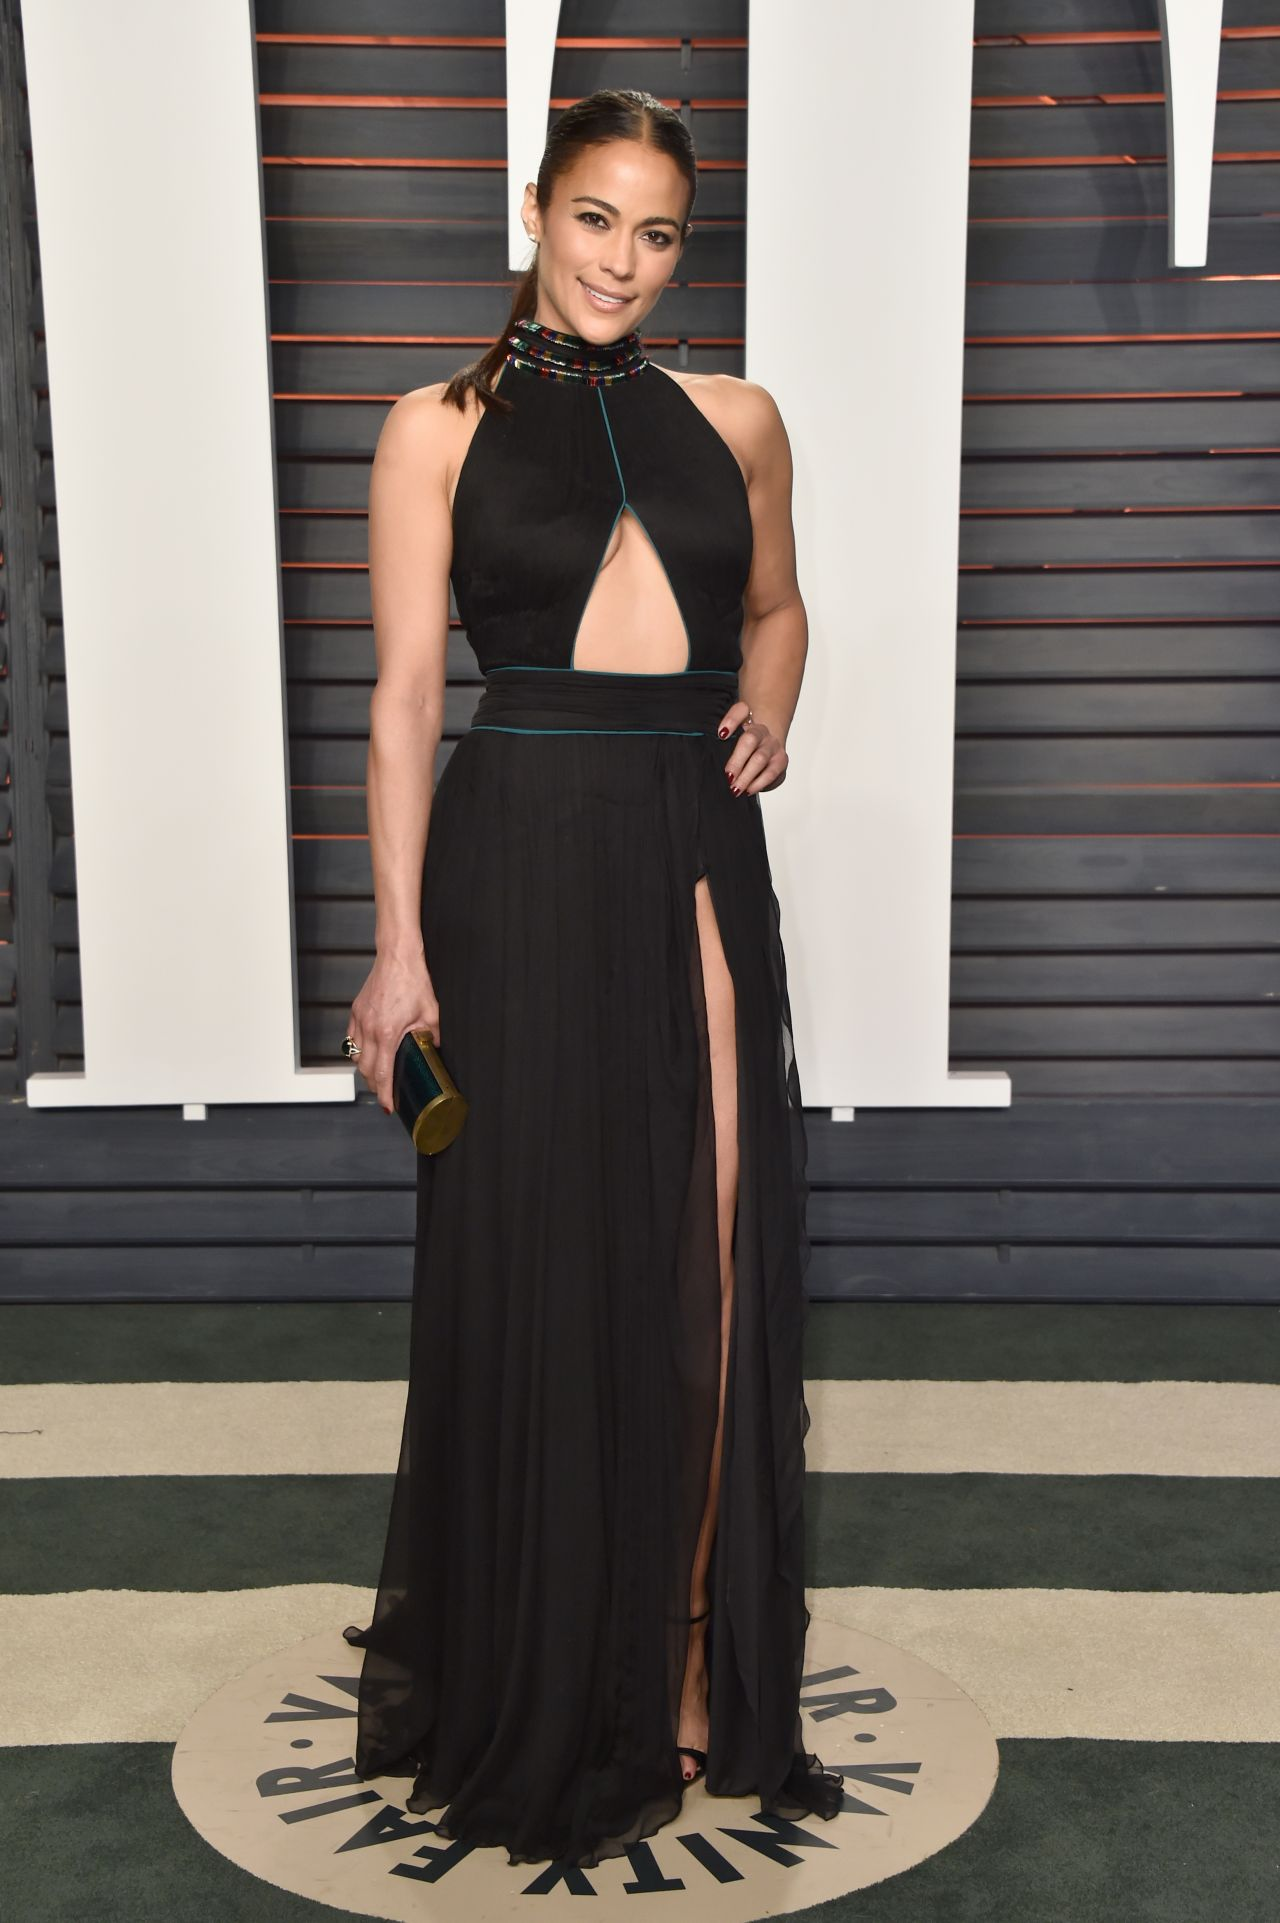 paula-patton-vanity-fair-oscar-2016-party-in-beverly-hills-ca-1-1